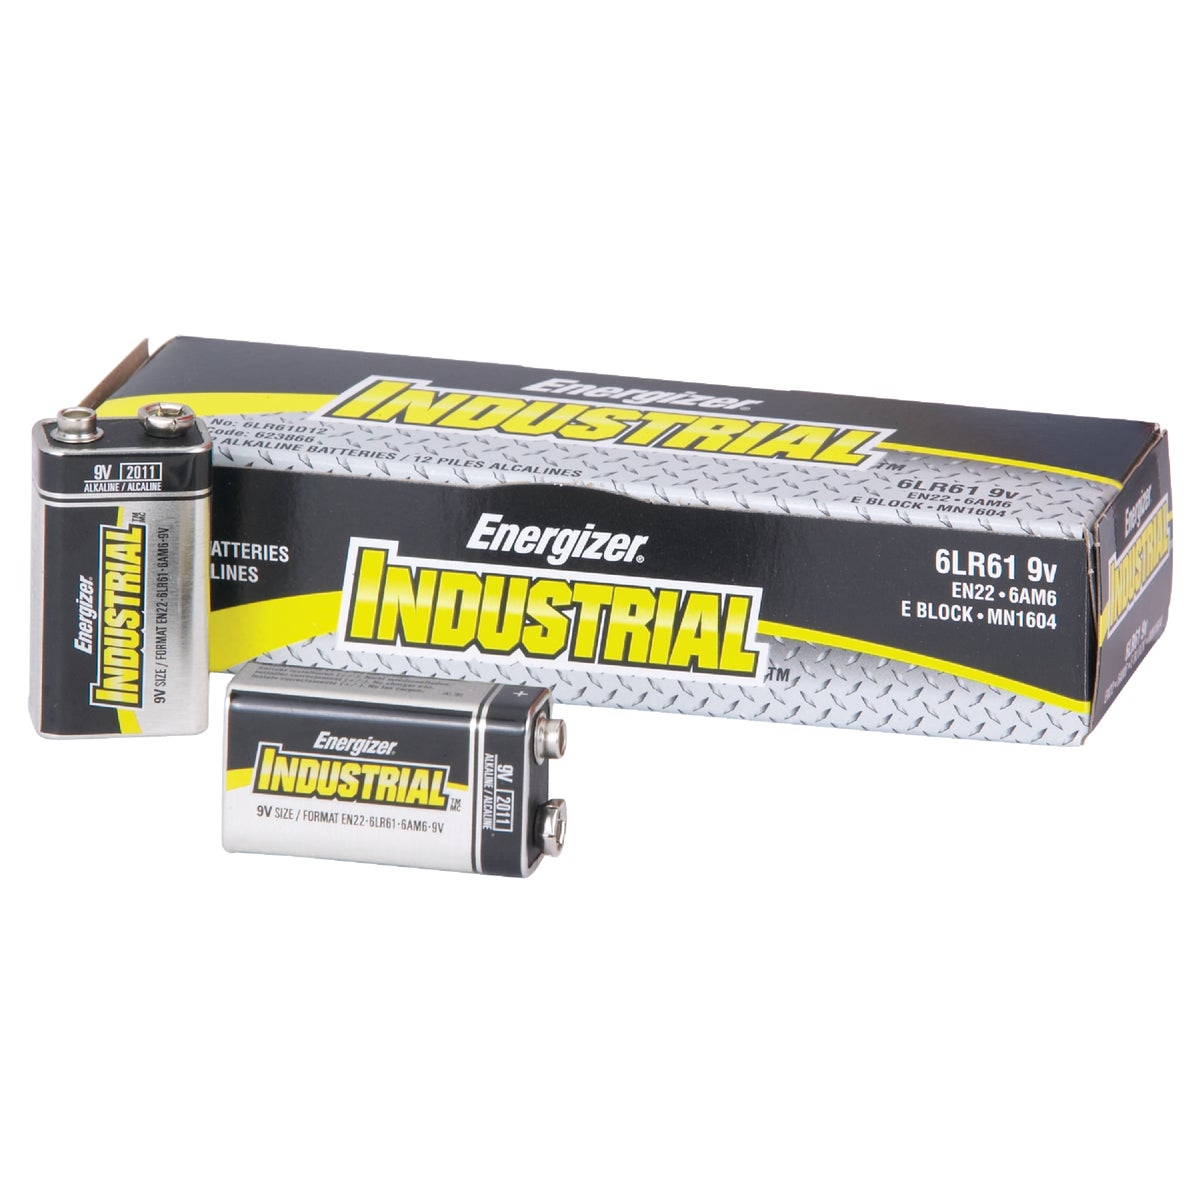 9V INDUSTRIAL BATTERY